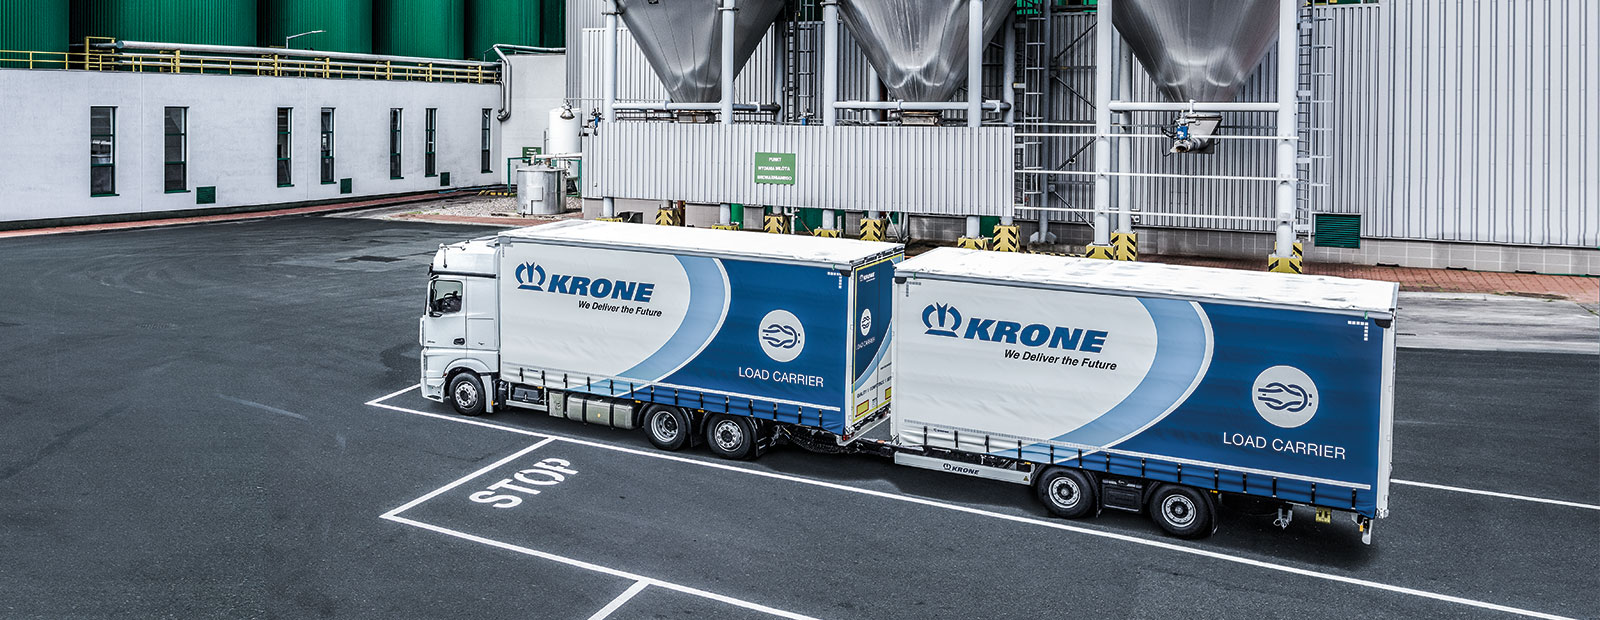 Load Carrier de Krone